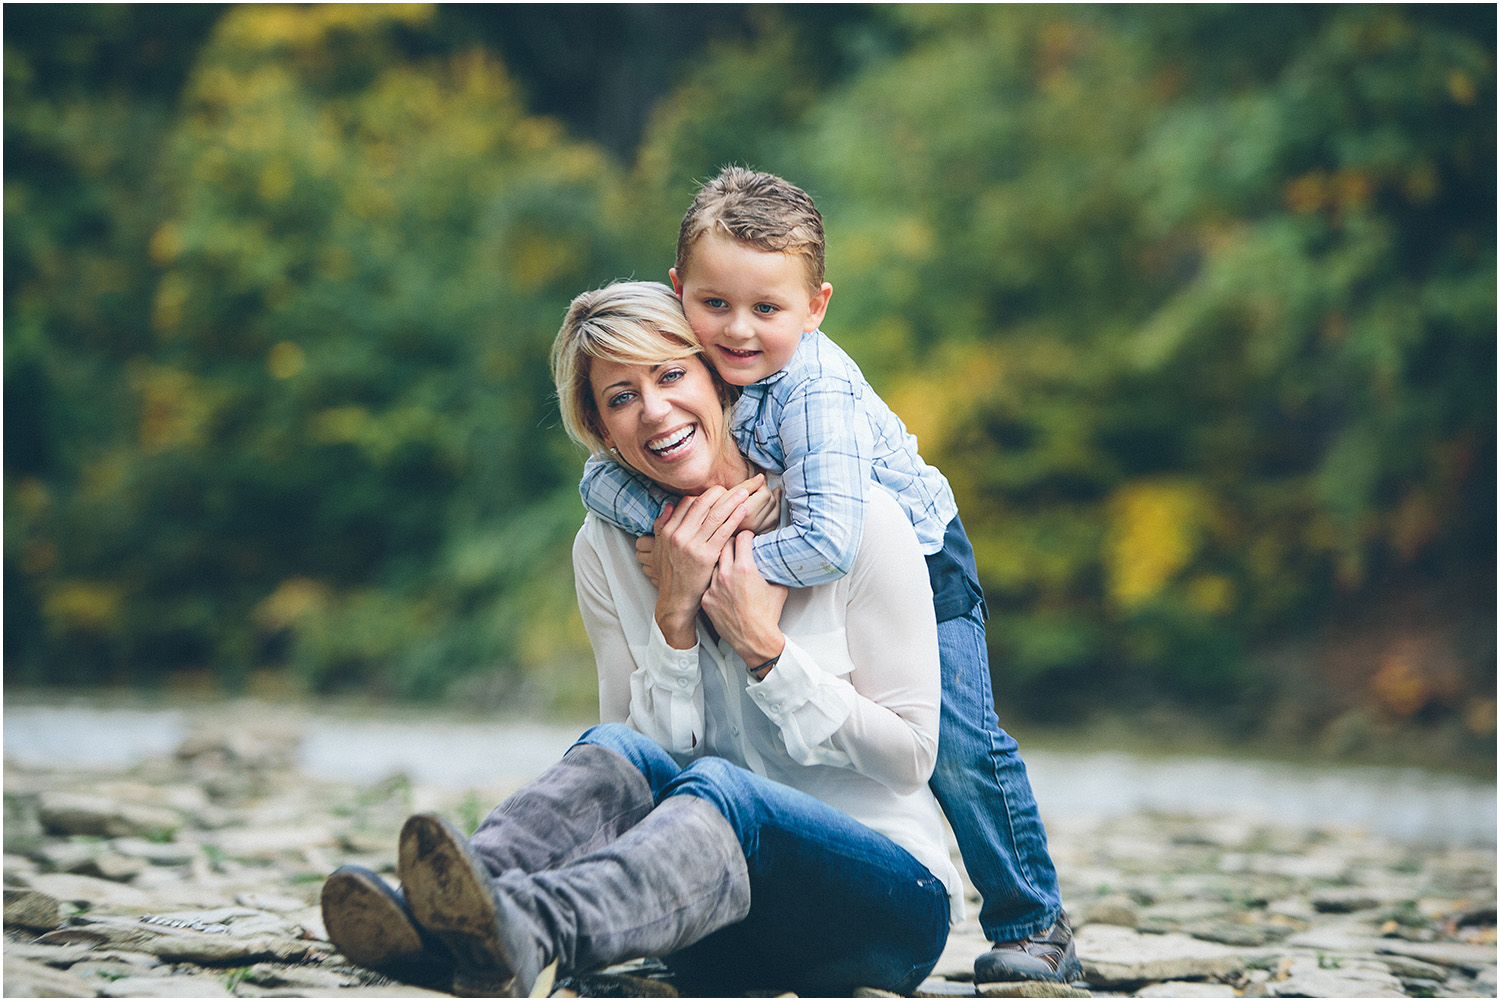 Mother / son love! Family Portraits in Cleveland at Rocky River Park